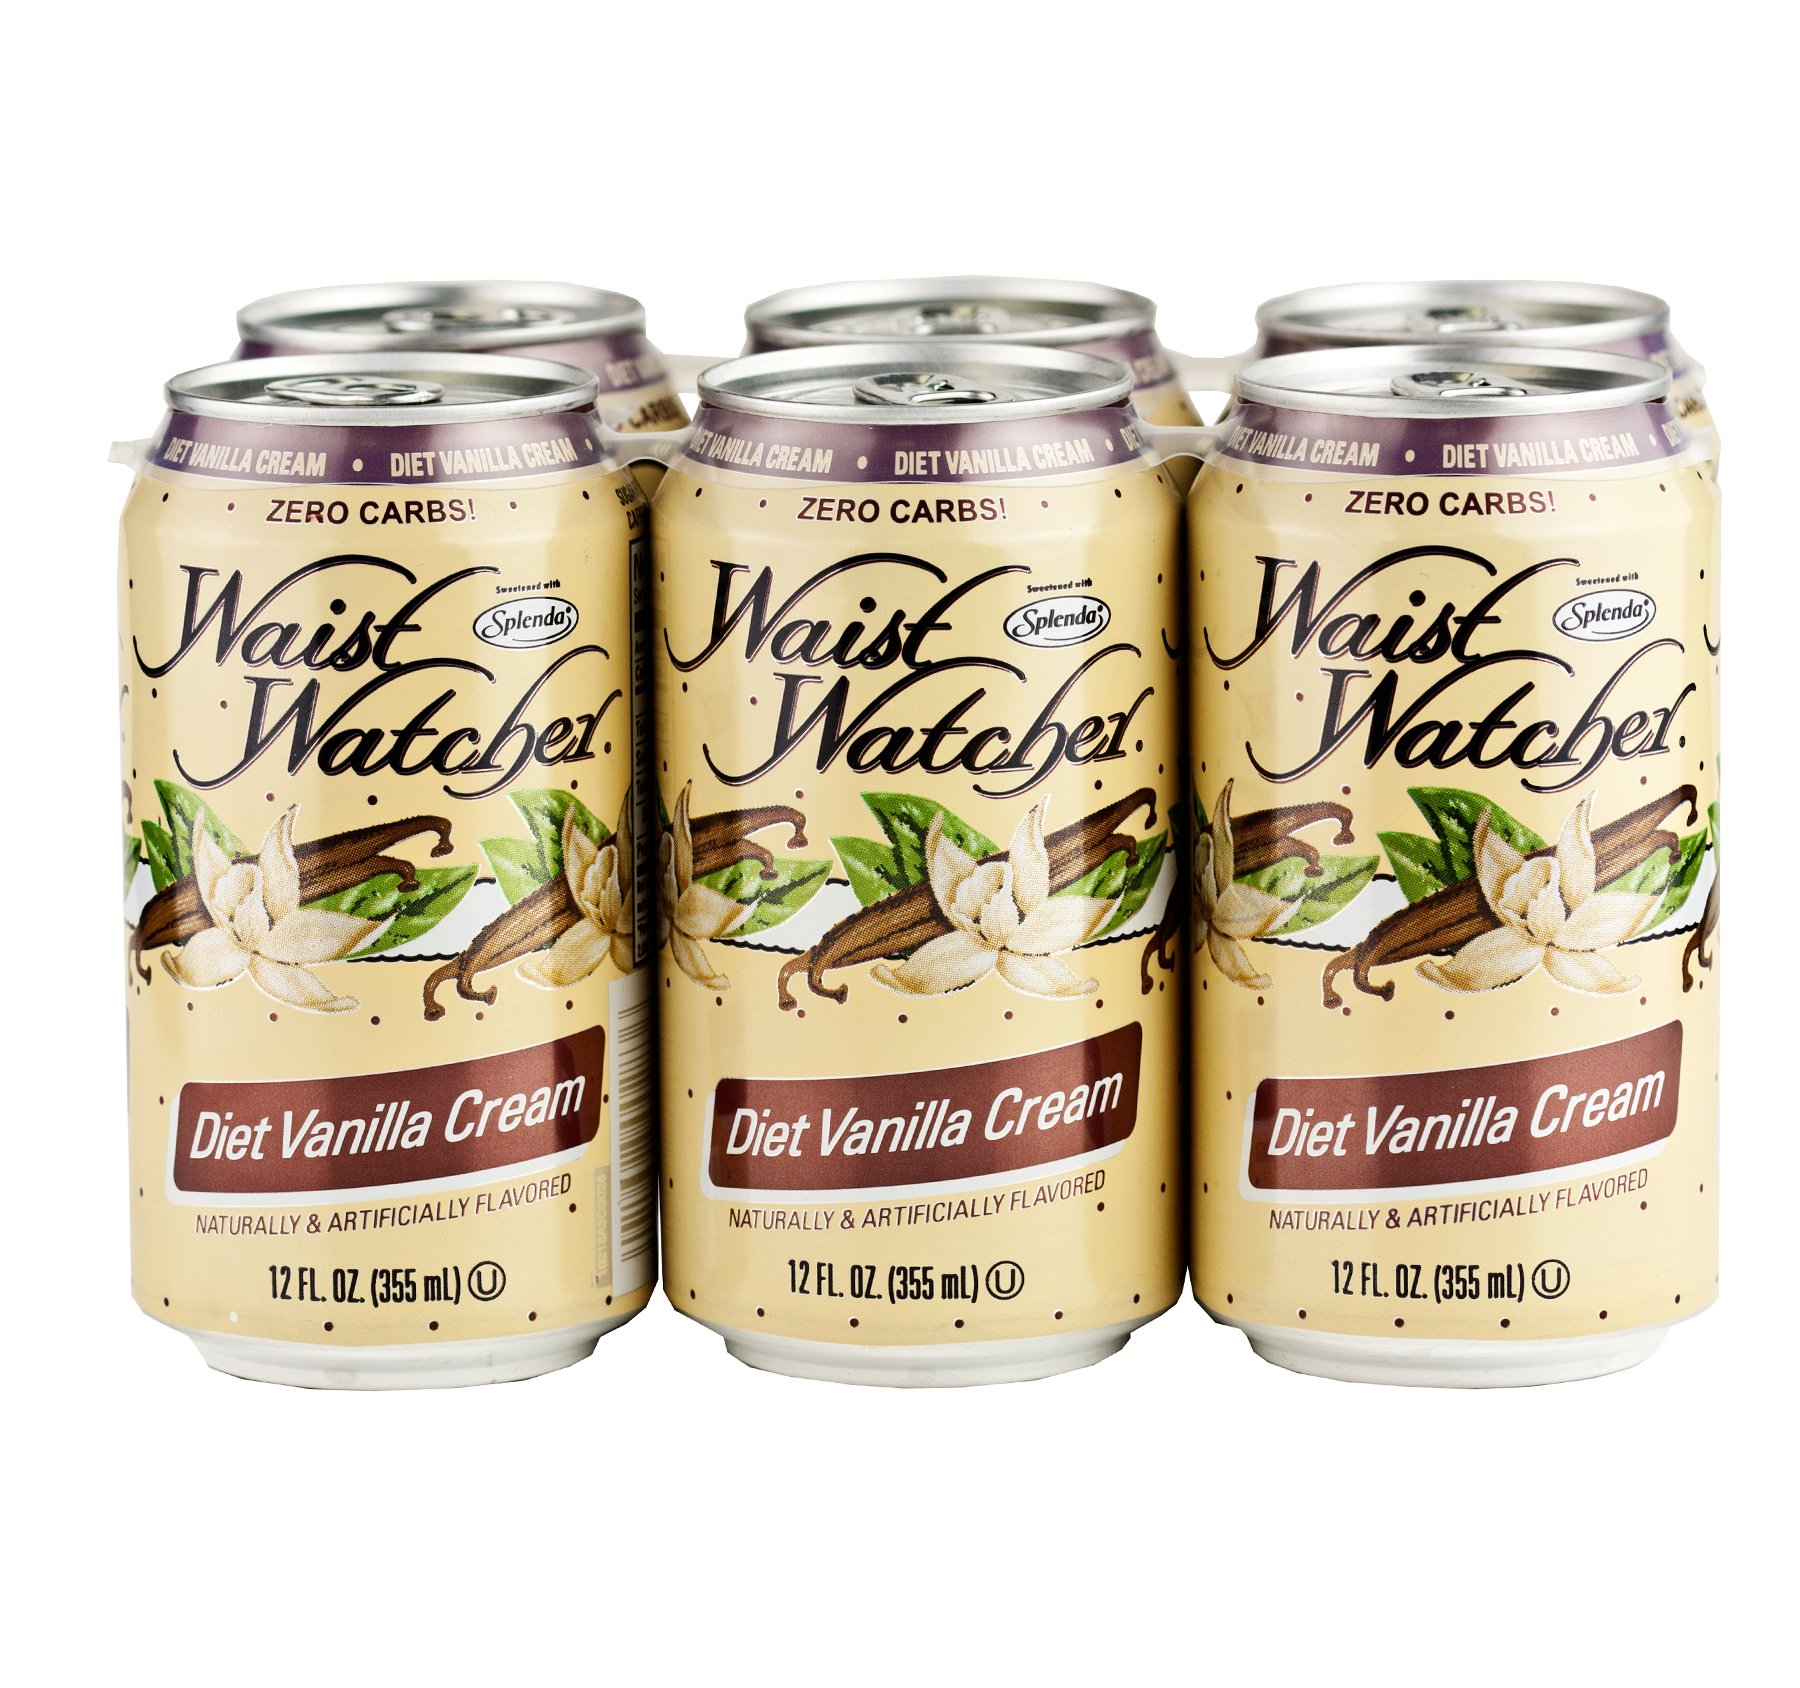 Waist Watcher Caffeine-Free Diet Vanilla Cream Soda, 12 Oz. Cans (One 6-Pack)